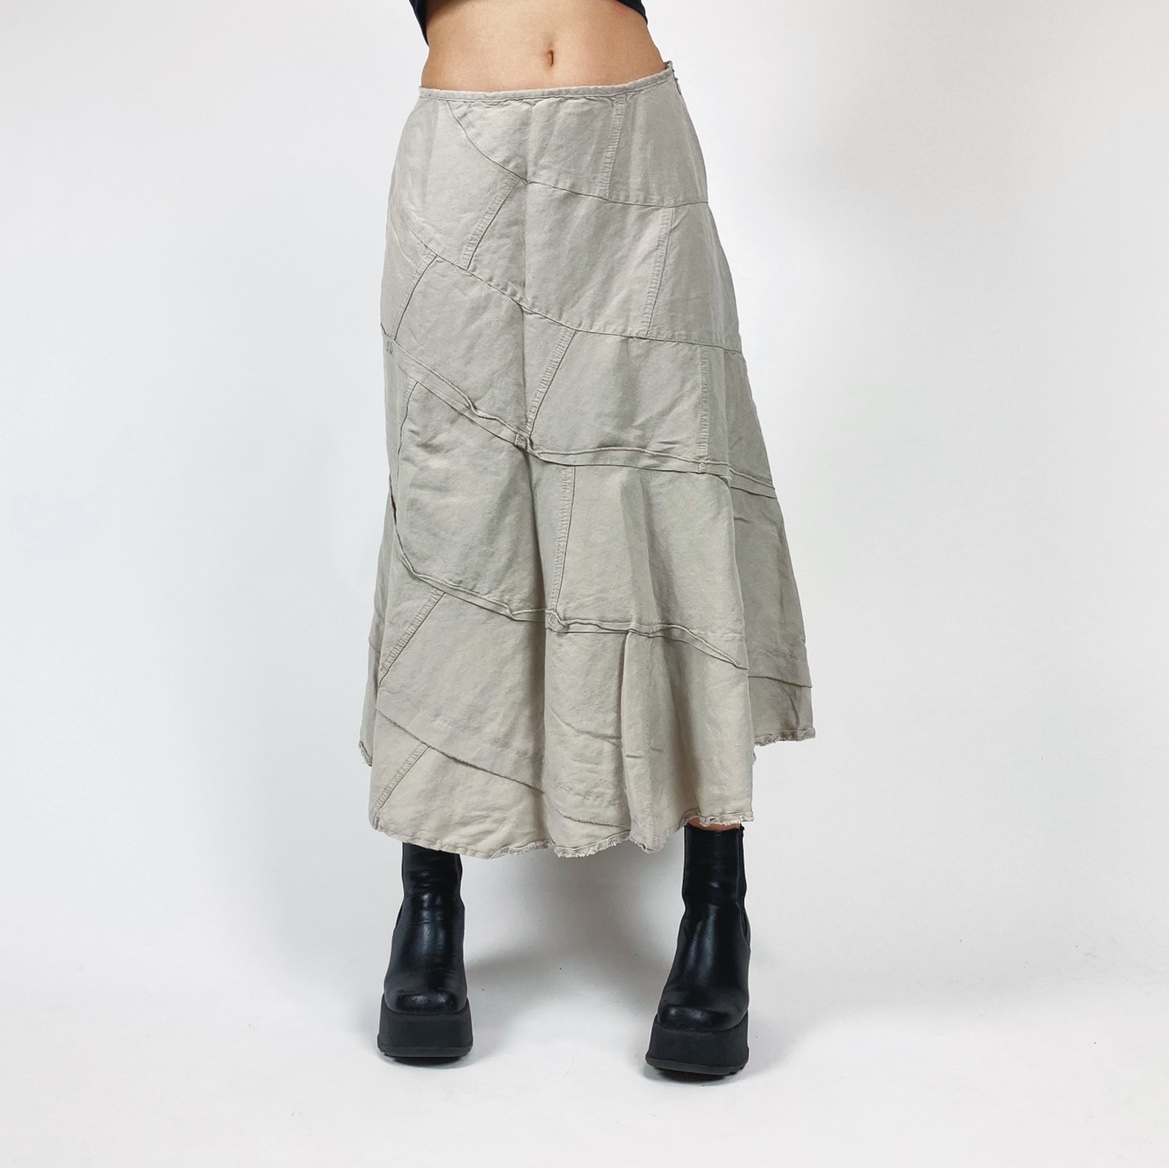 Product Image 1 - Beige Long Midi Skirt Sewn together